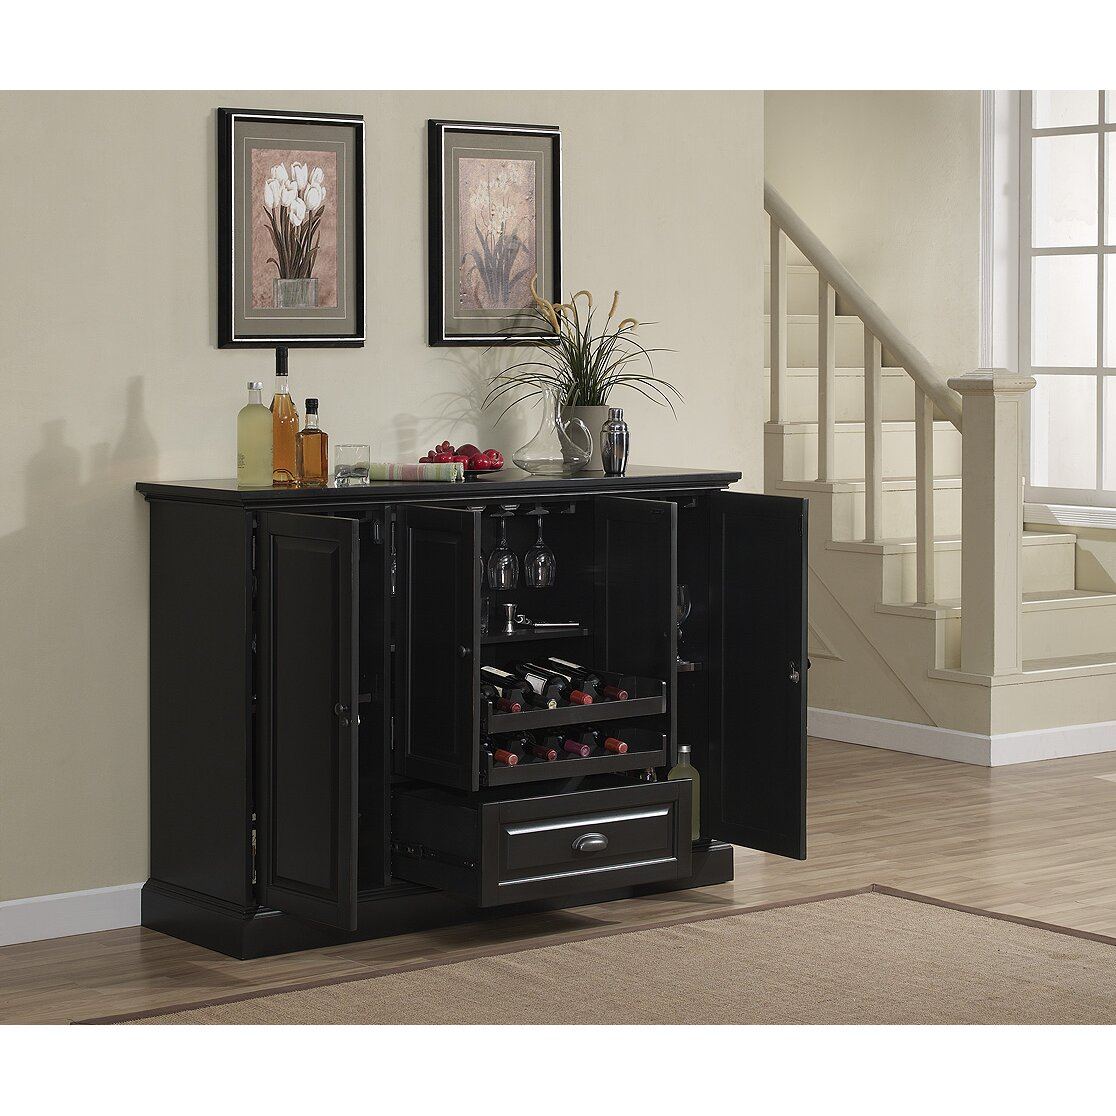 Home Wine Bar: Darby Home Co Styward Bar Cabinet With Wine Storage